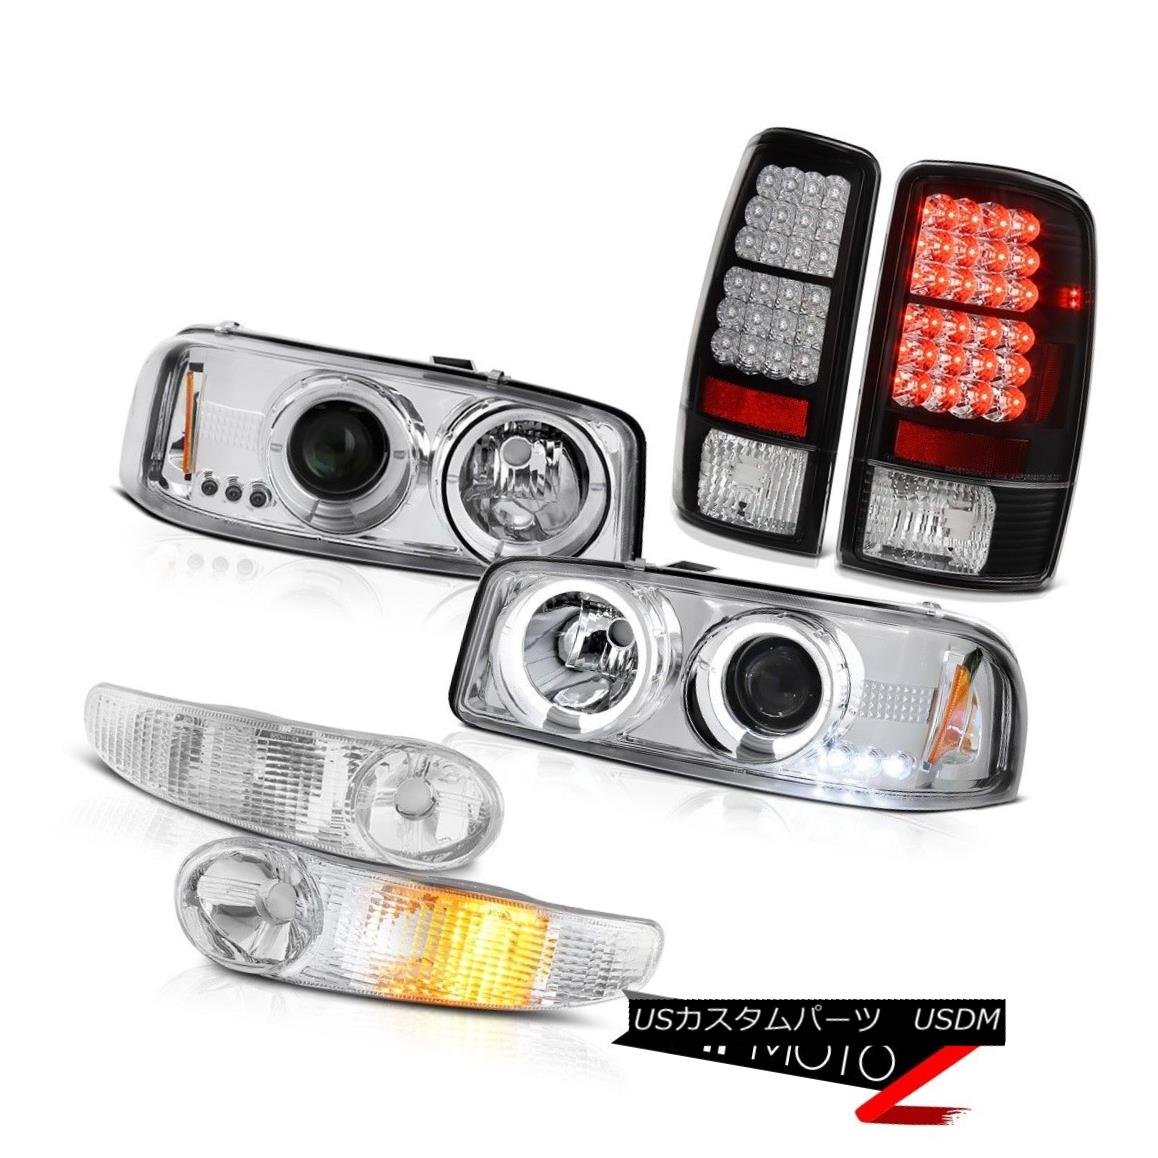 テールライト Projector Headlights Halo Euro Parking SMD Brake Tail Lights 2000-2006 Yukon XL プロジェクターヘッドライトHalo Euro Parking SMDブレーキテールライト2000-2006 Yukon XL